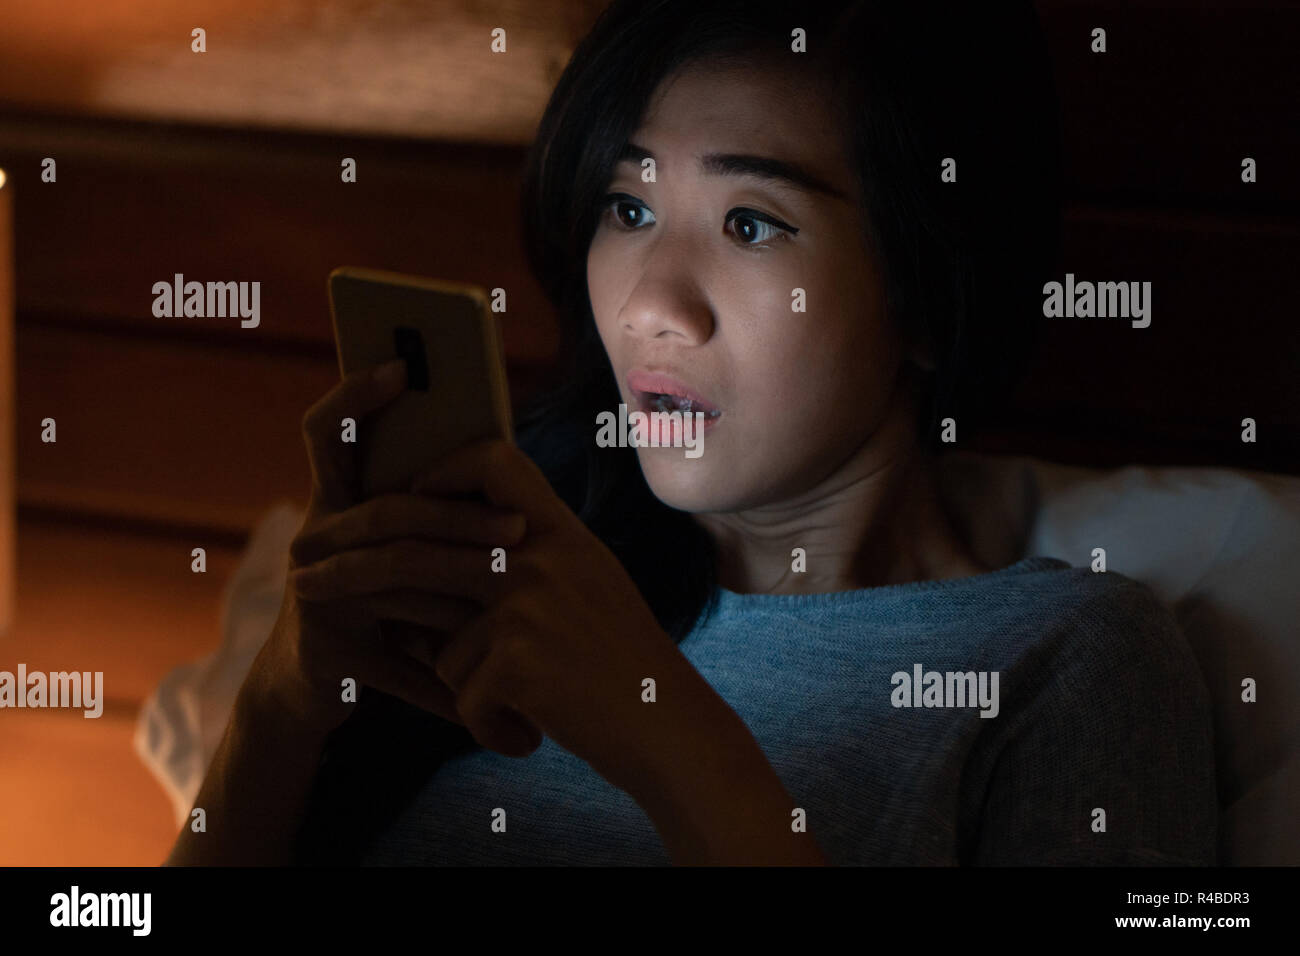 shocked girl looking at her smartphone - Stock Image